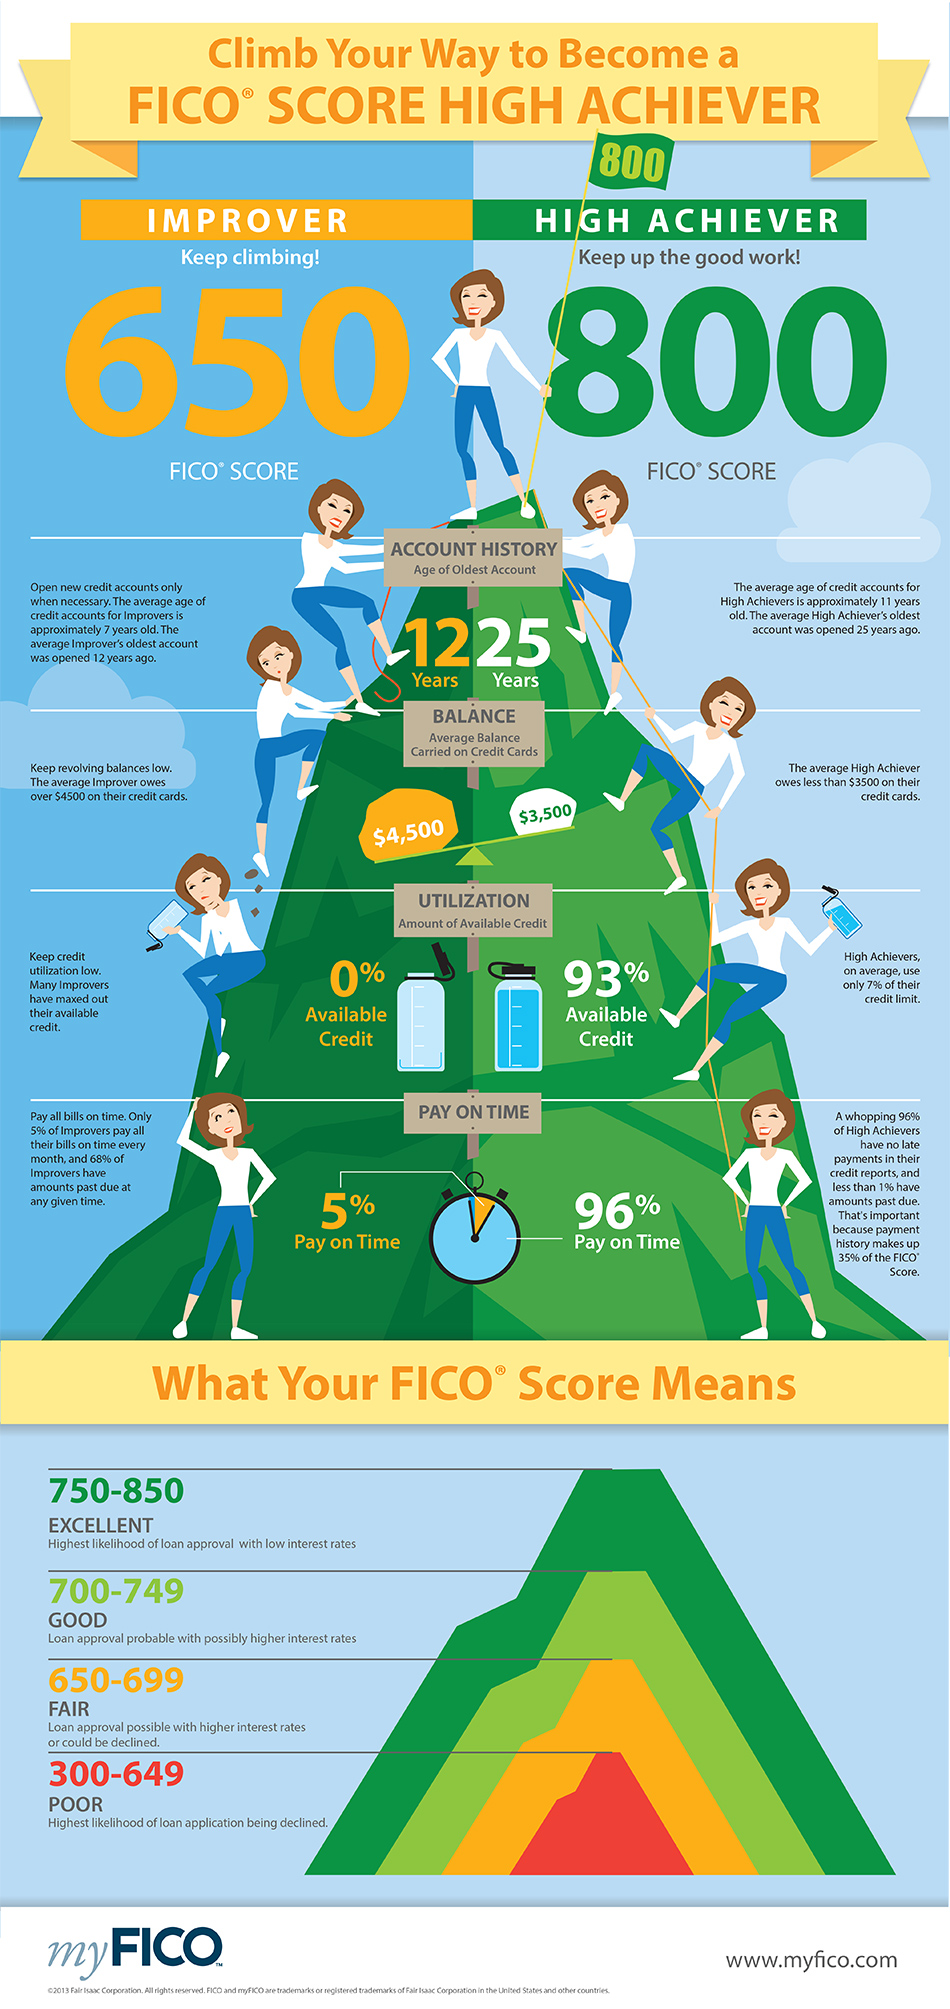 FICO Score High Achievers Share Common Habits